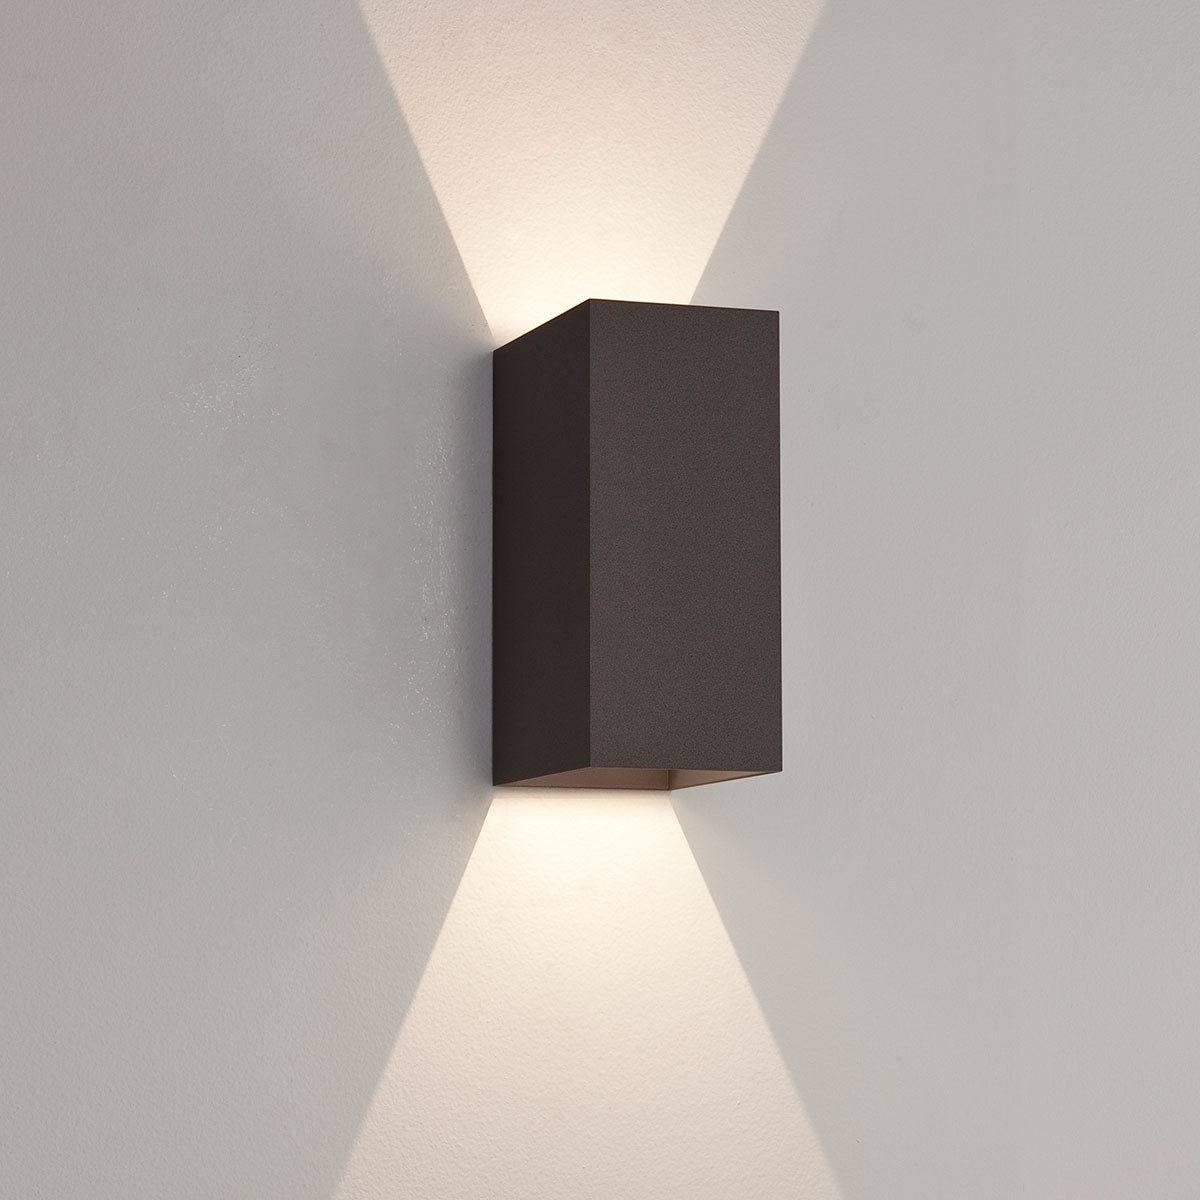 Astro Oslo 160 Black Outdoor Led Wall Light At Uk Electrical Supplies (#3 of 15)